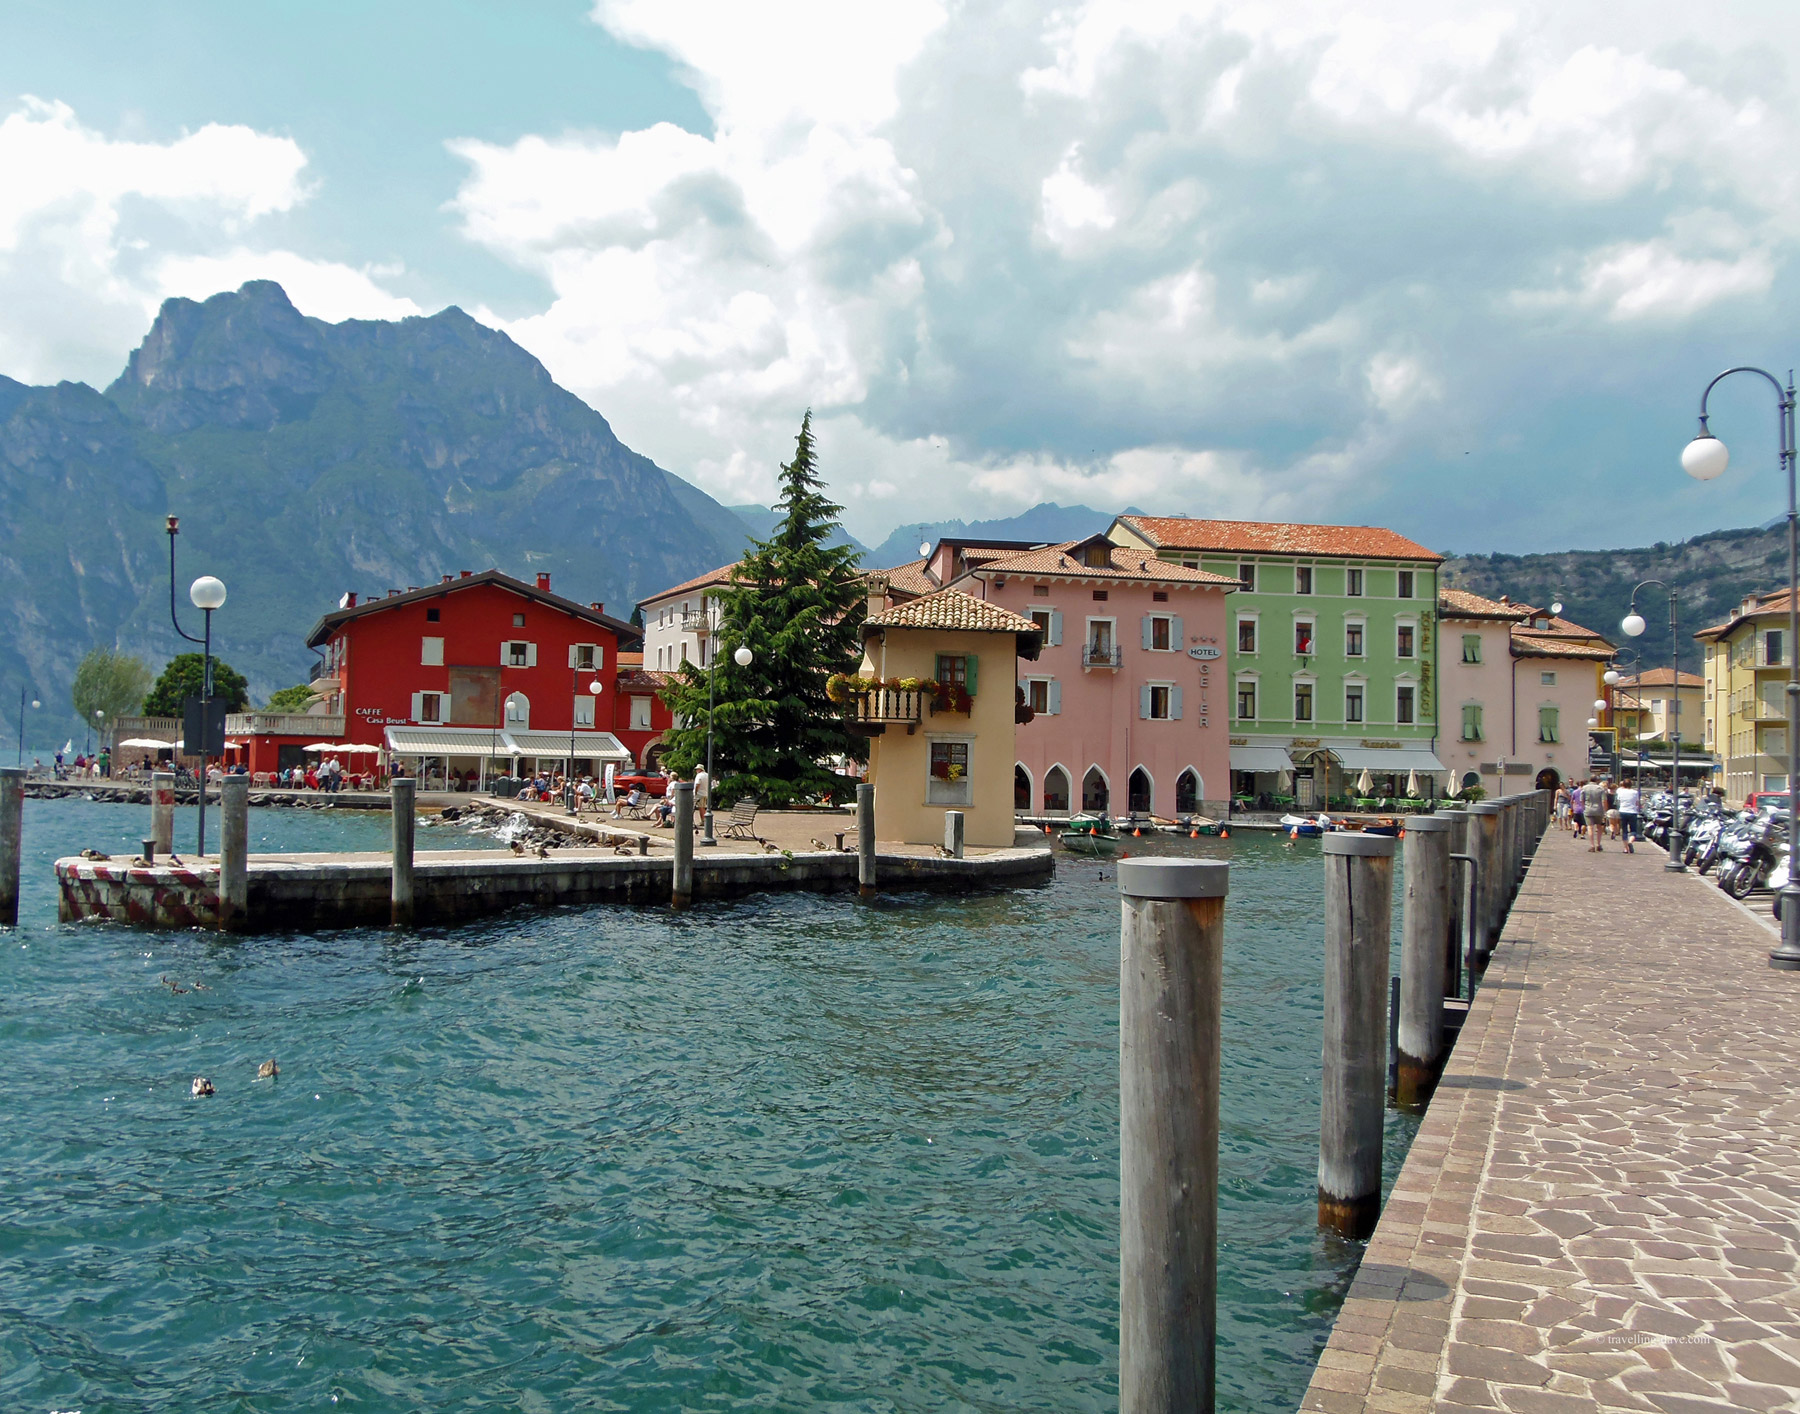 View of colorful houses of Torbole in Italy